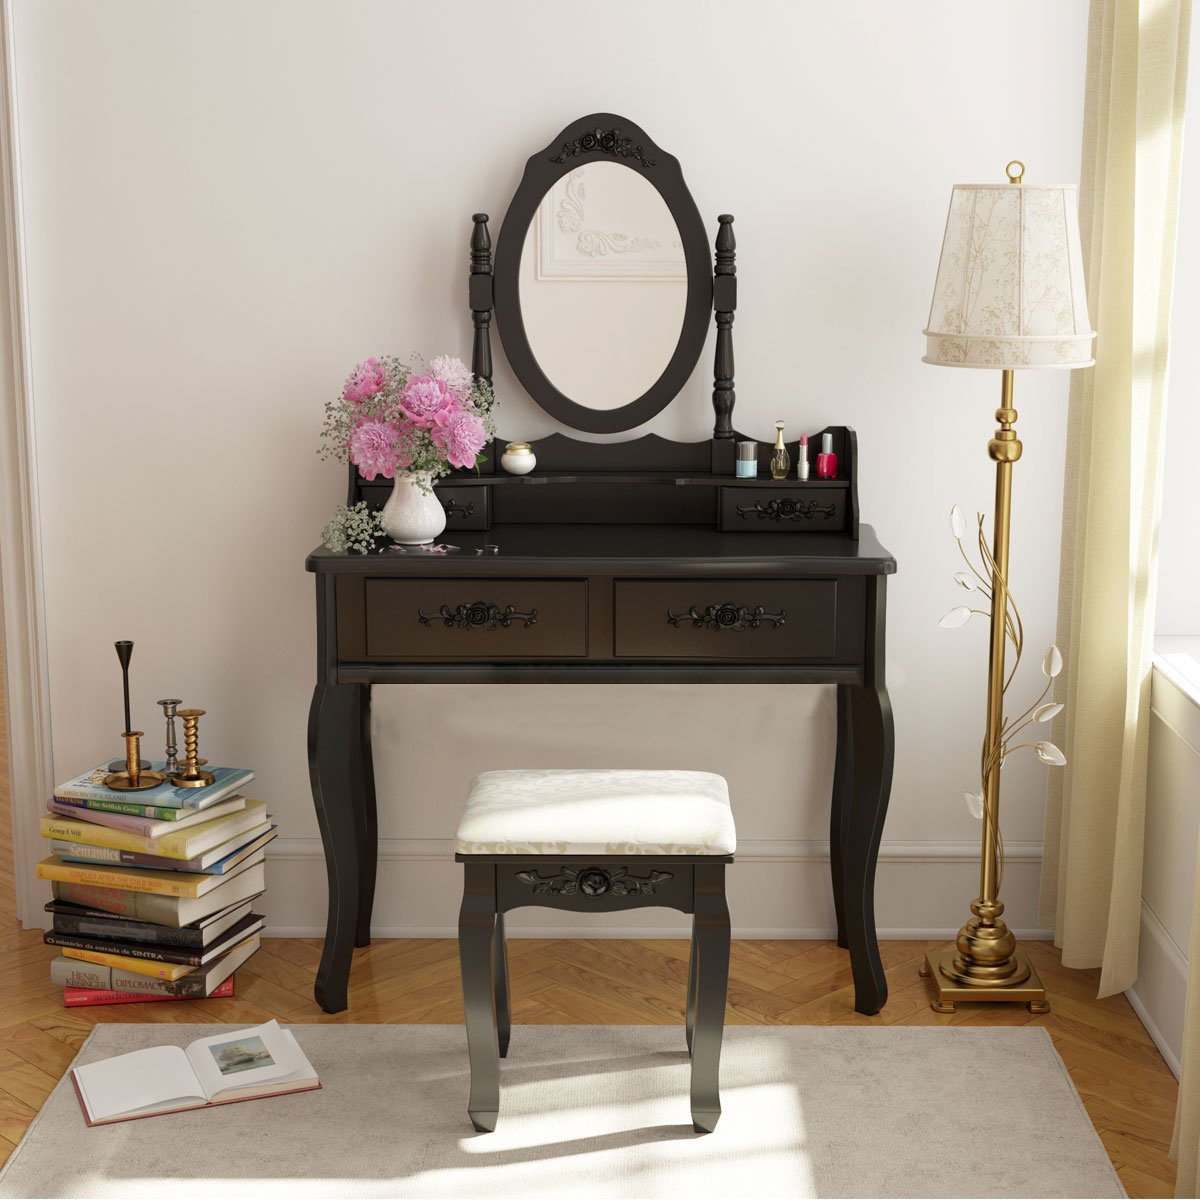 Vanity makeup dressing jewelry 4 drawer table set w stool for White makeup desk with mirror